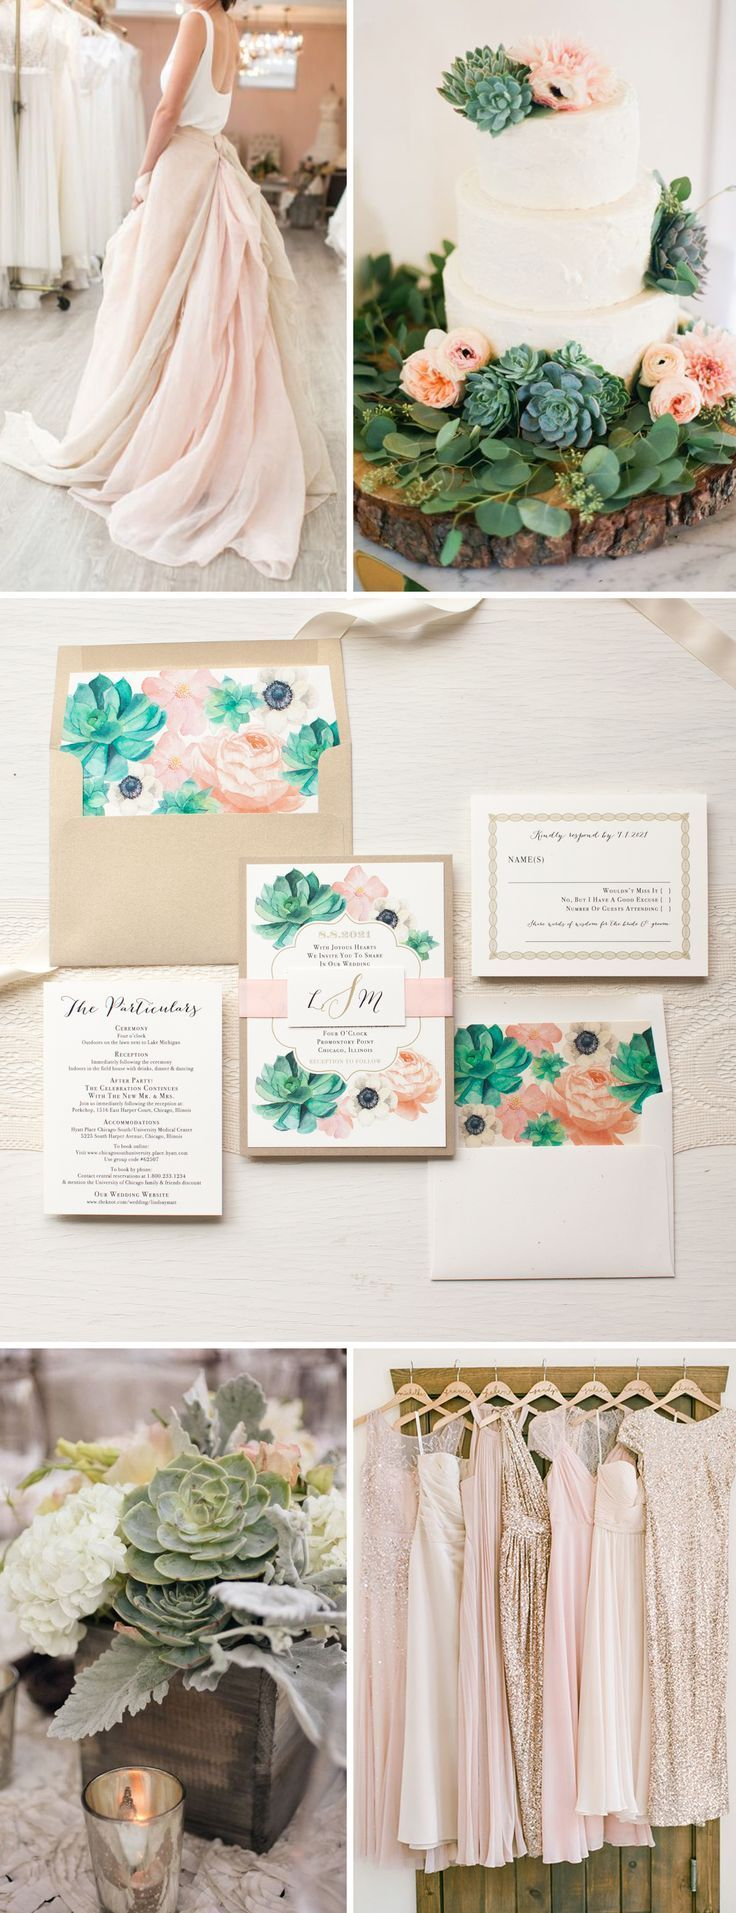 Succulent Blush and Gold Wedding                                                                                                                                                     More